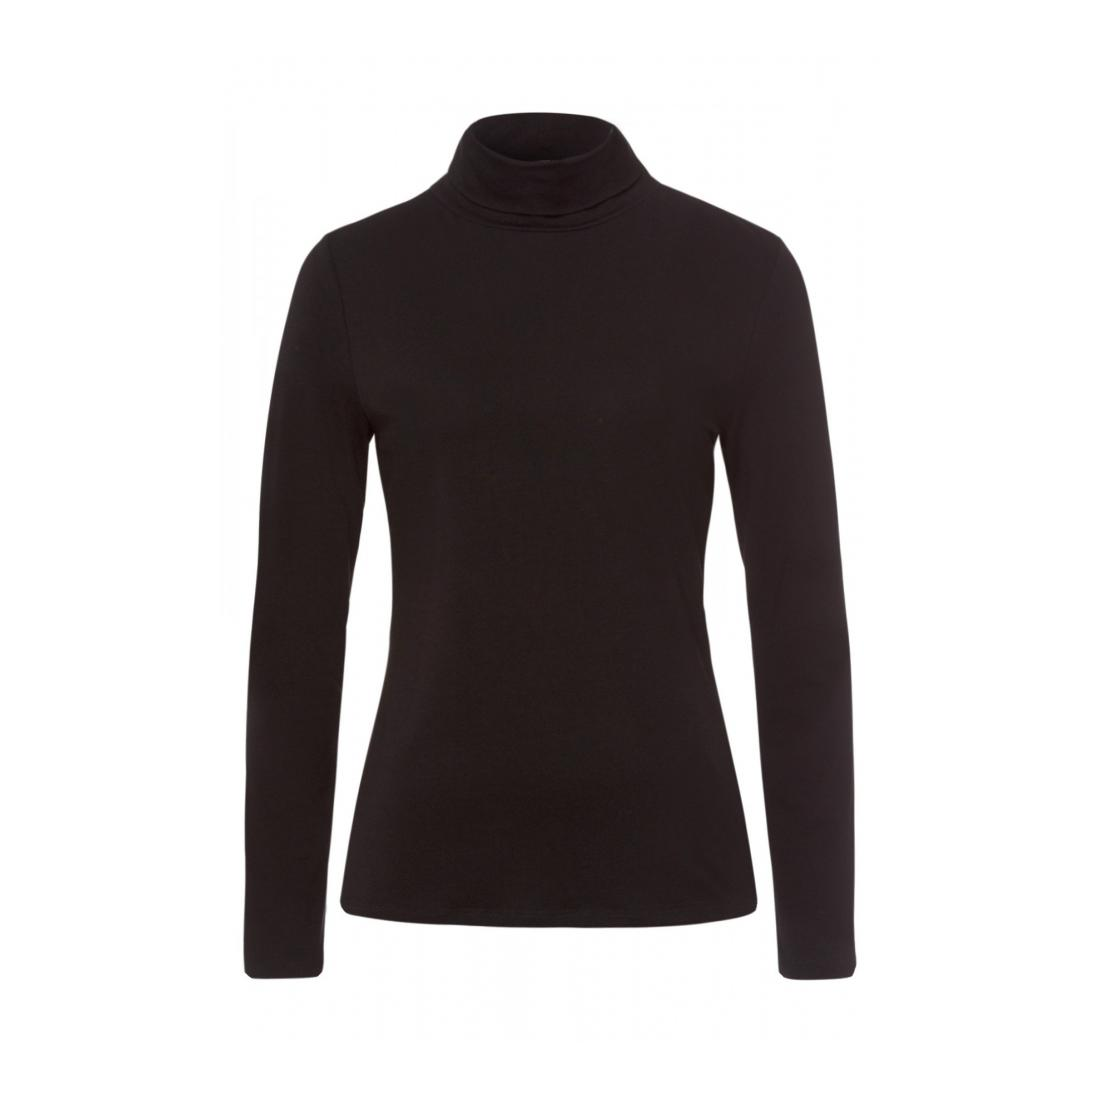 More & More Rollkragen Damen Turtleneck Active